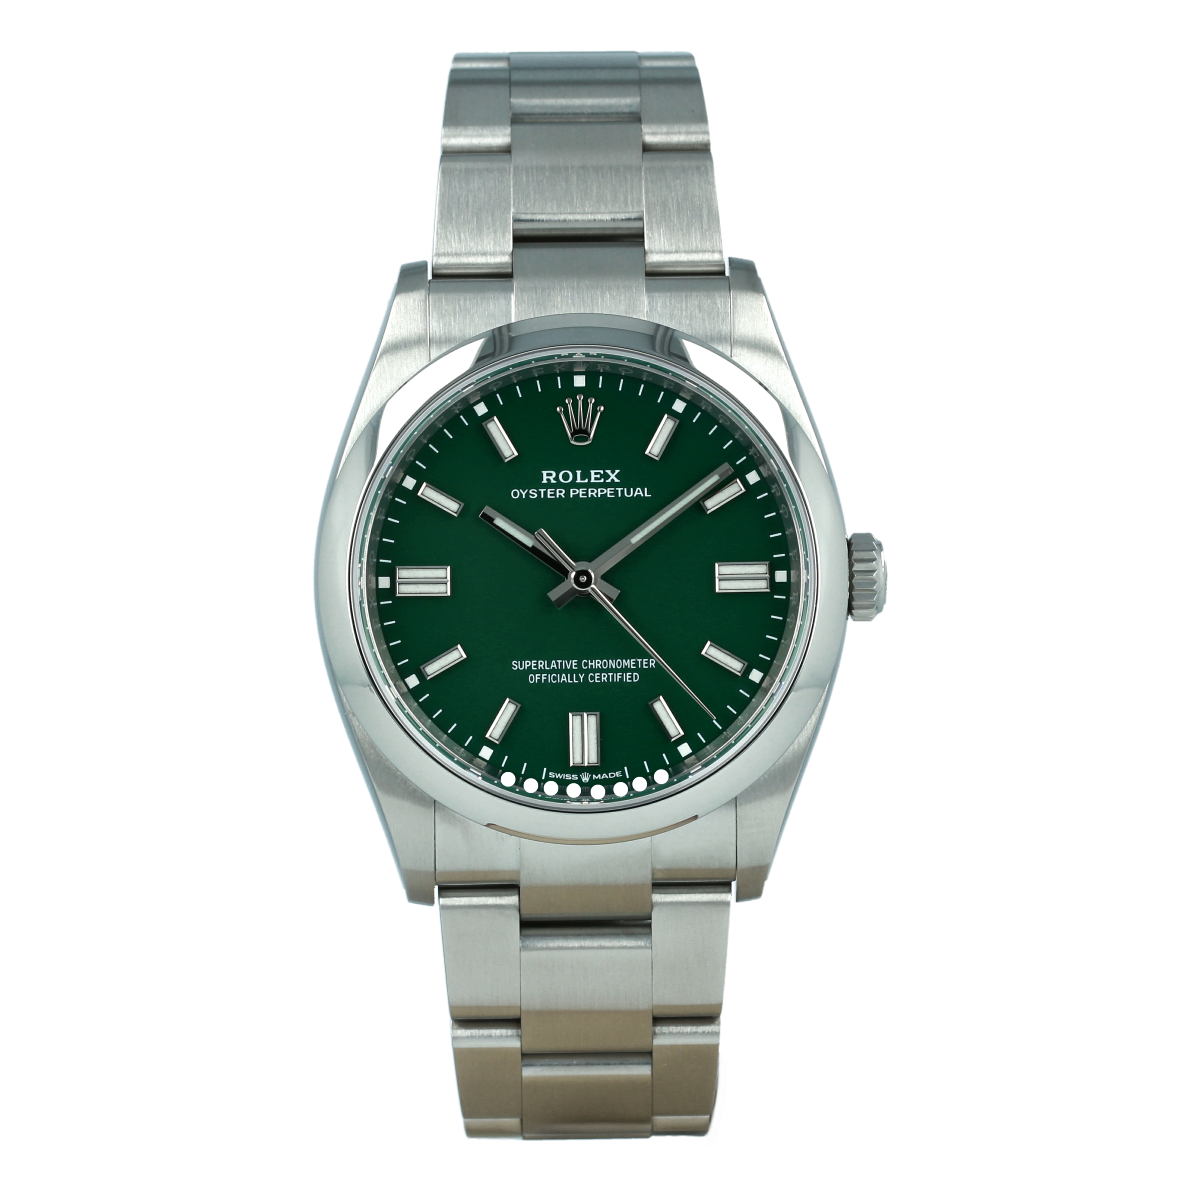 Rolex Oyster Perpetual 126000 36mm Green Dial *New Model* | Buy pre-owned Rolex watch